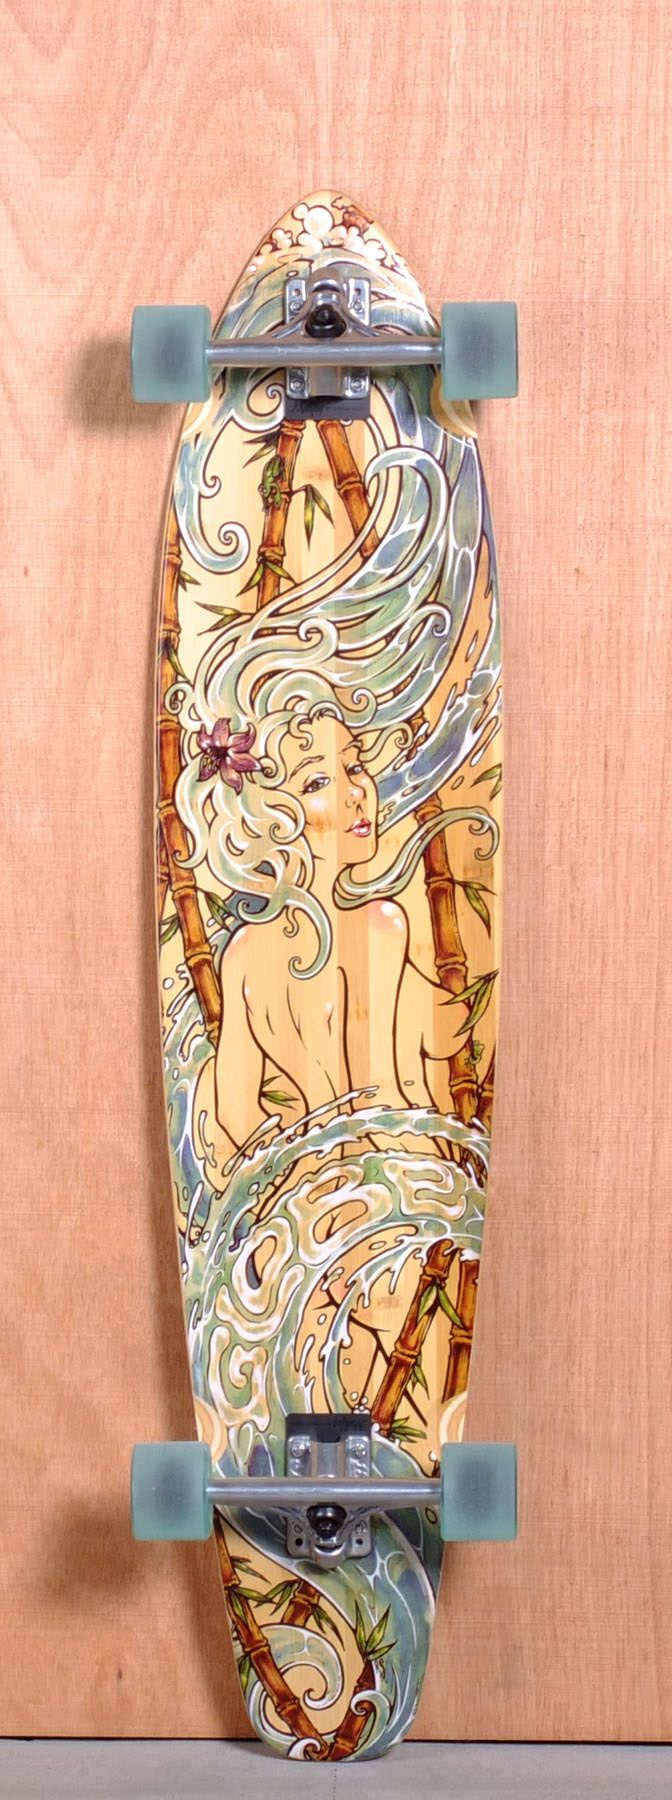 """The Globe Kaguya Longboard Complete is designed for Cruising and Carving. Ships fully assembled and ready to skate! Function: Cruising, Carving Features: Concave, Kick Tail Material: 5 Ply Maple, Bamboo Top and Bottom Sheets Length: 42.75"""" Width: 9.5"""" Wheelbase: 30.75"""" Thickness: 1/2"""" Hole Pattern: New School Grip: Clear i have this"""